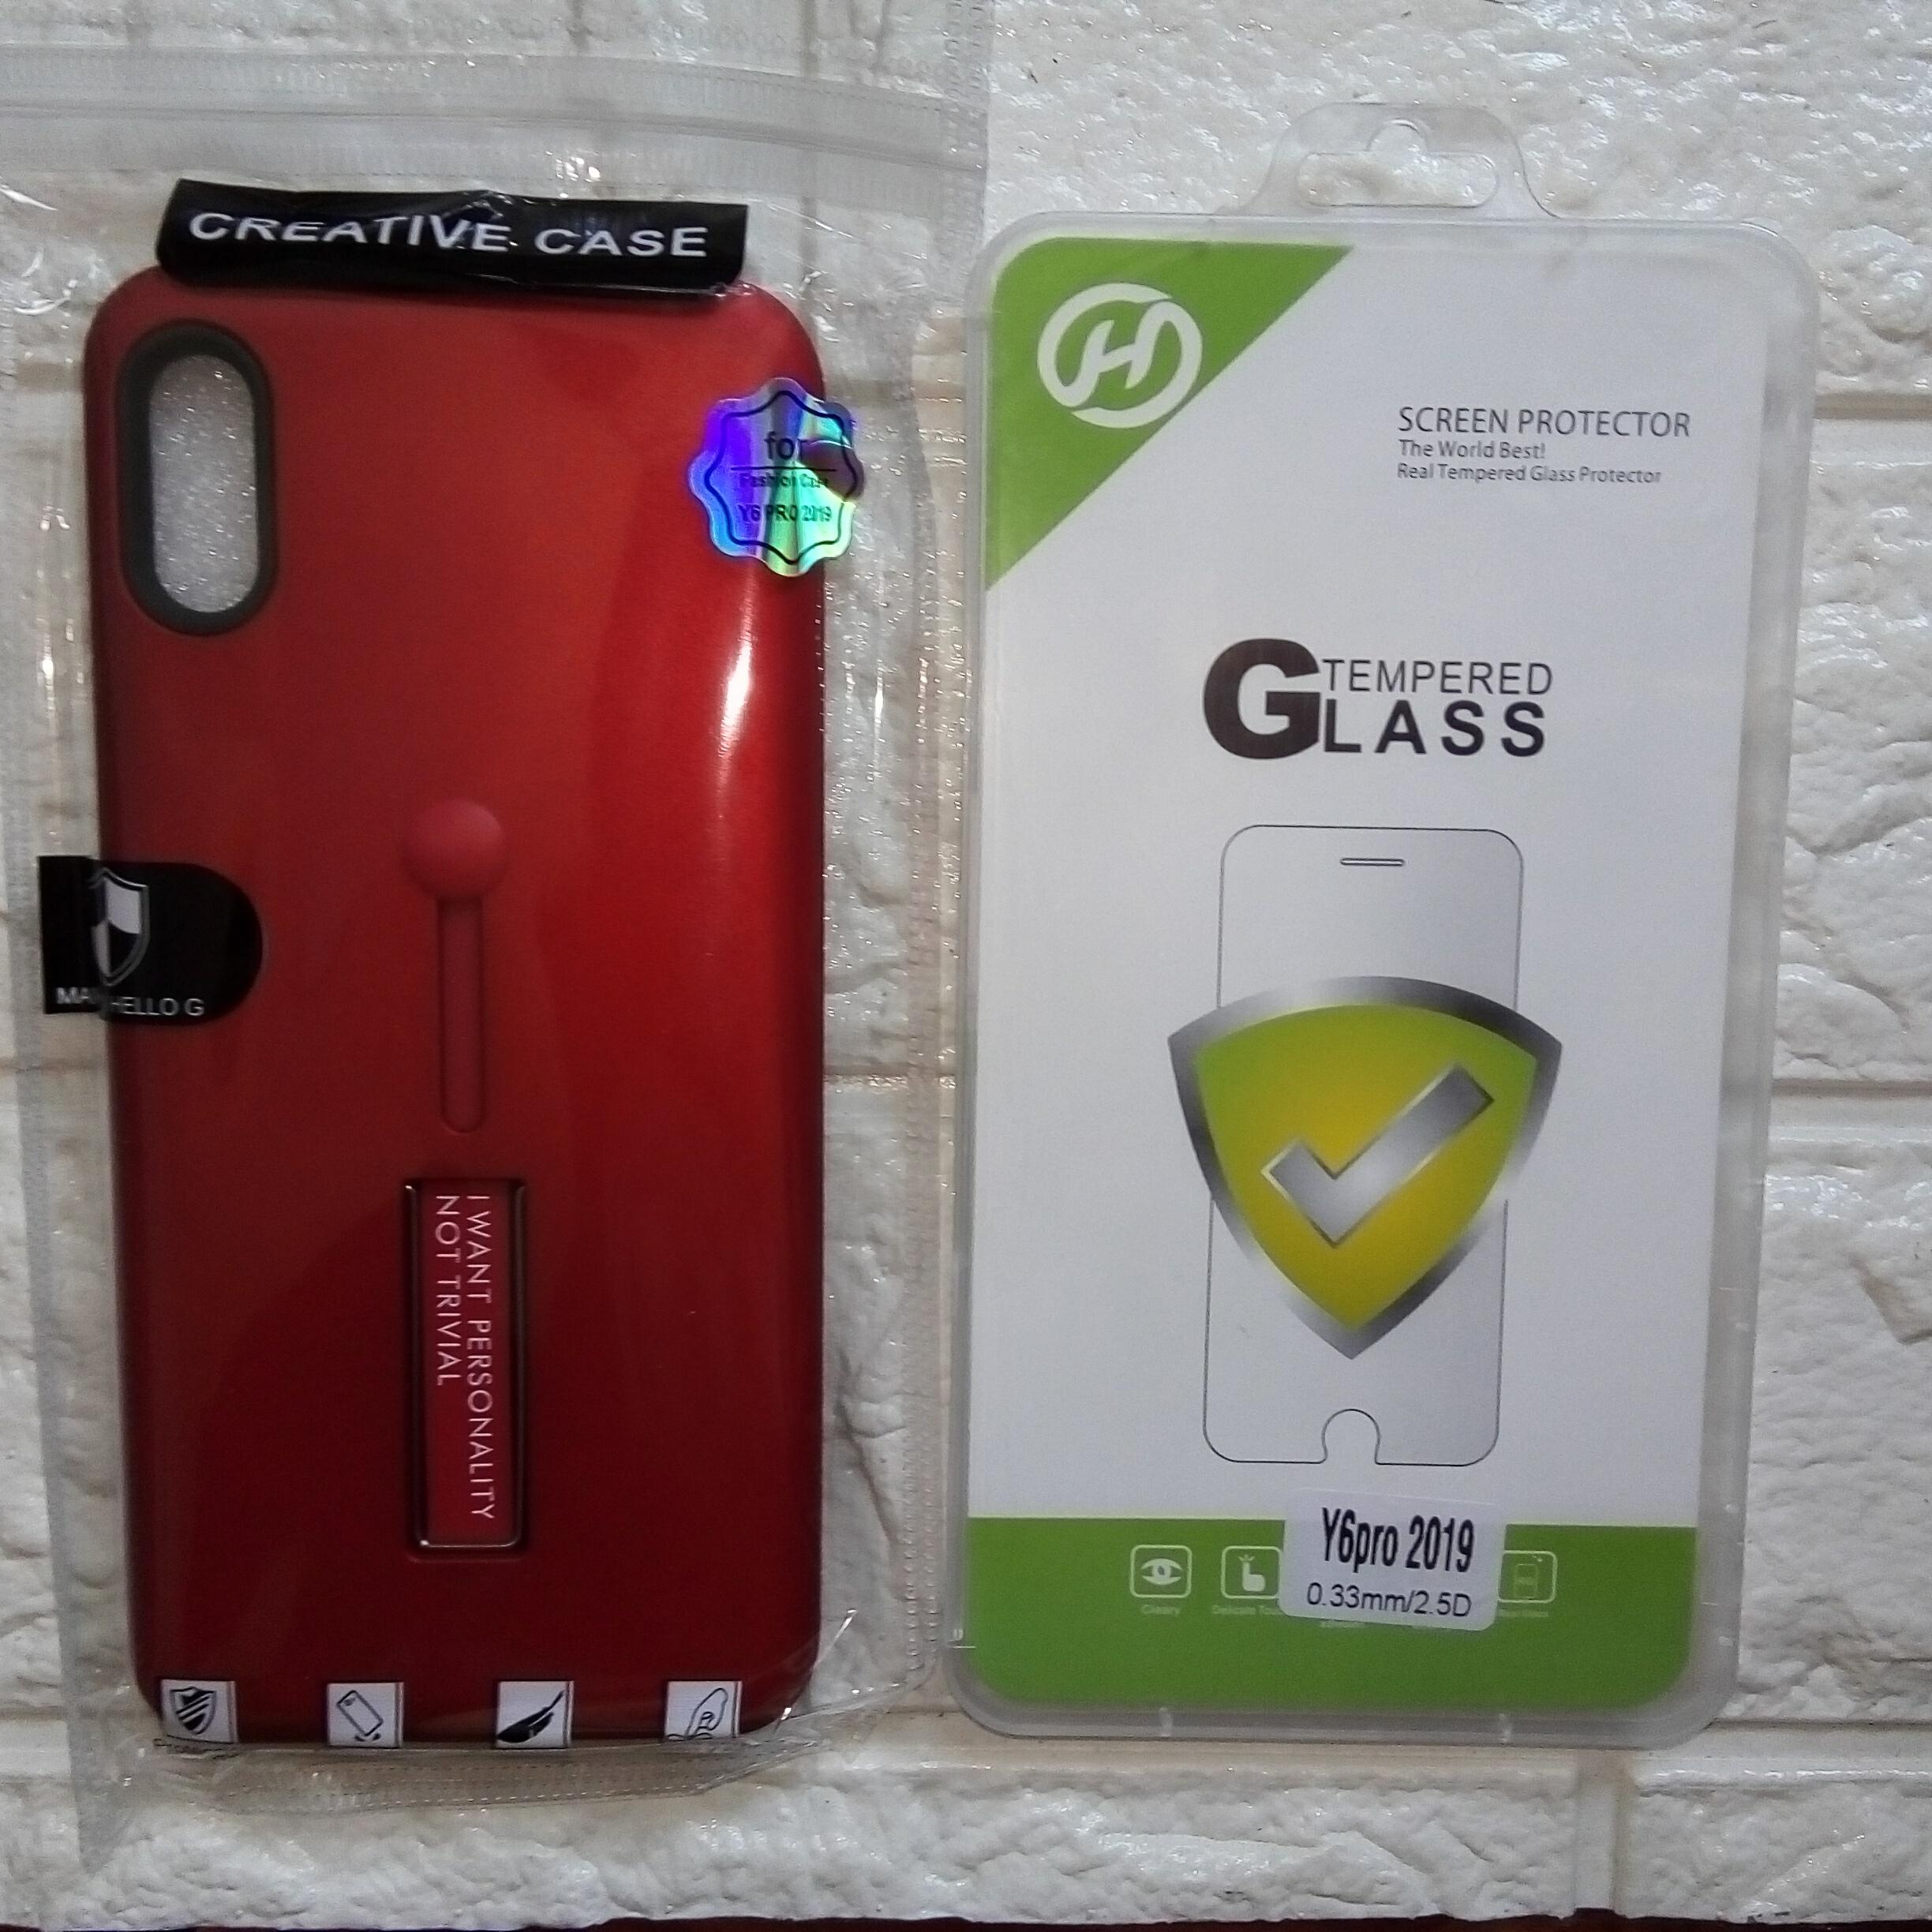 Huawei y6 pro 2019 case with tempered glass